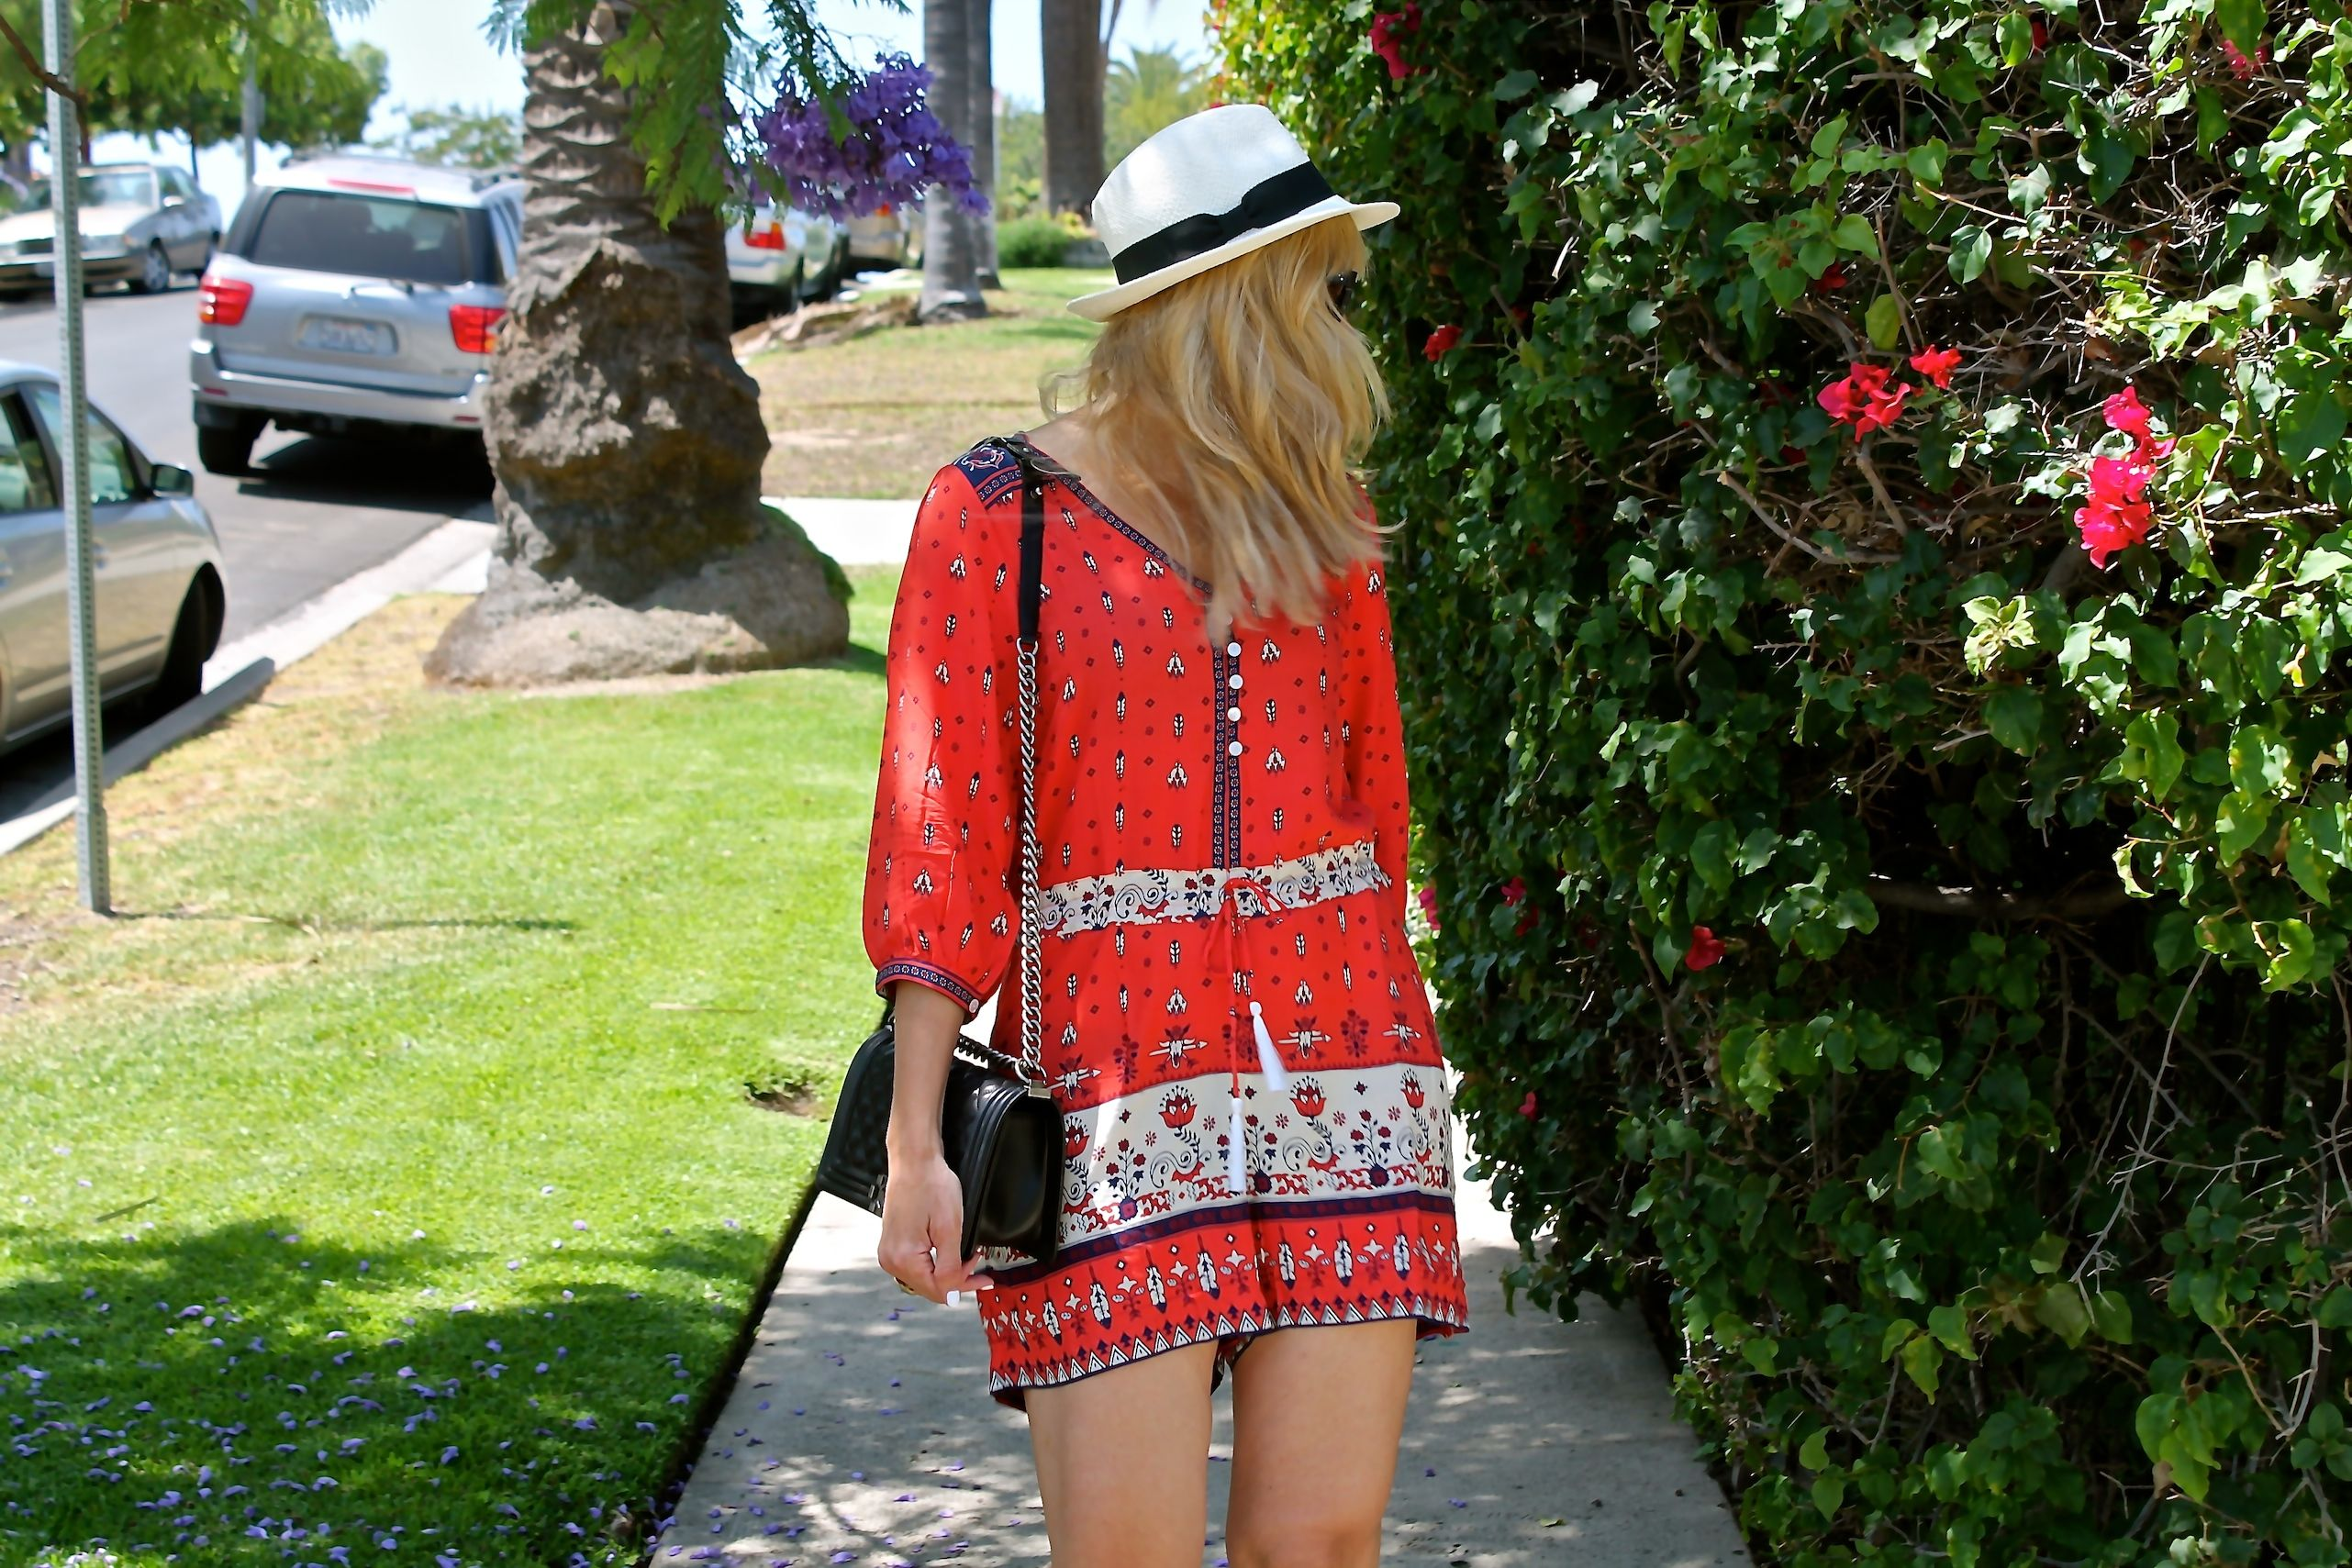 #jenknowsbest #jenandrews #romper #spelldesigns @spell_byronbay #bag #chanel #streetstyle #style #blog #blogger #fashionblogger www.jenknowsbest.com